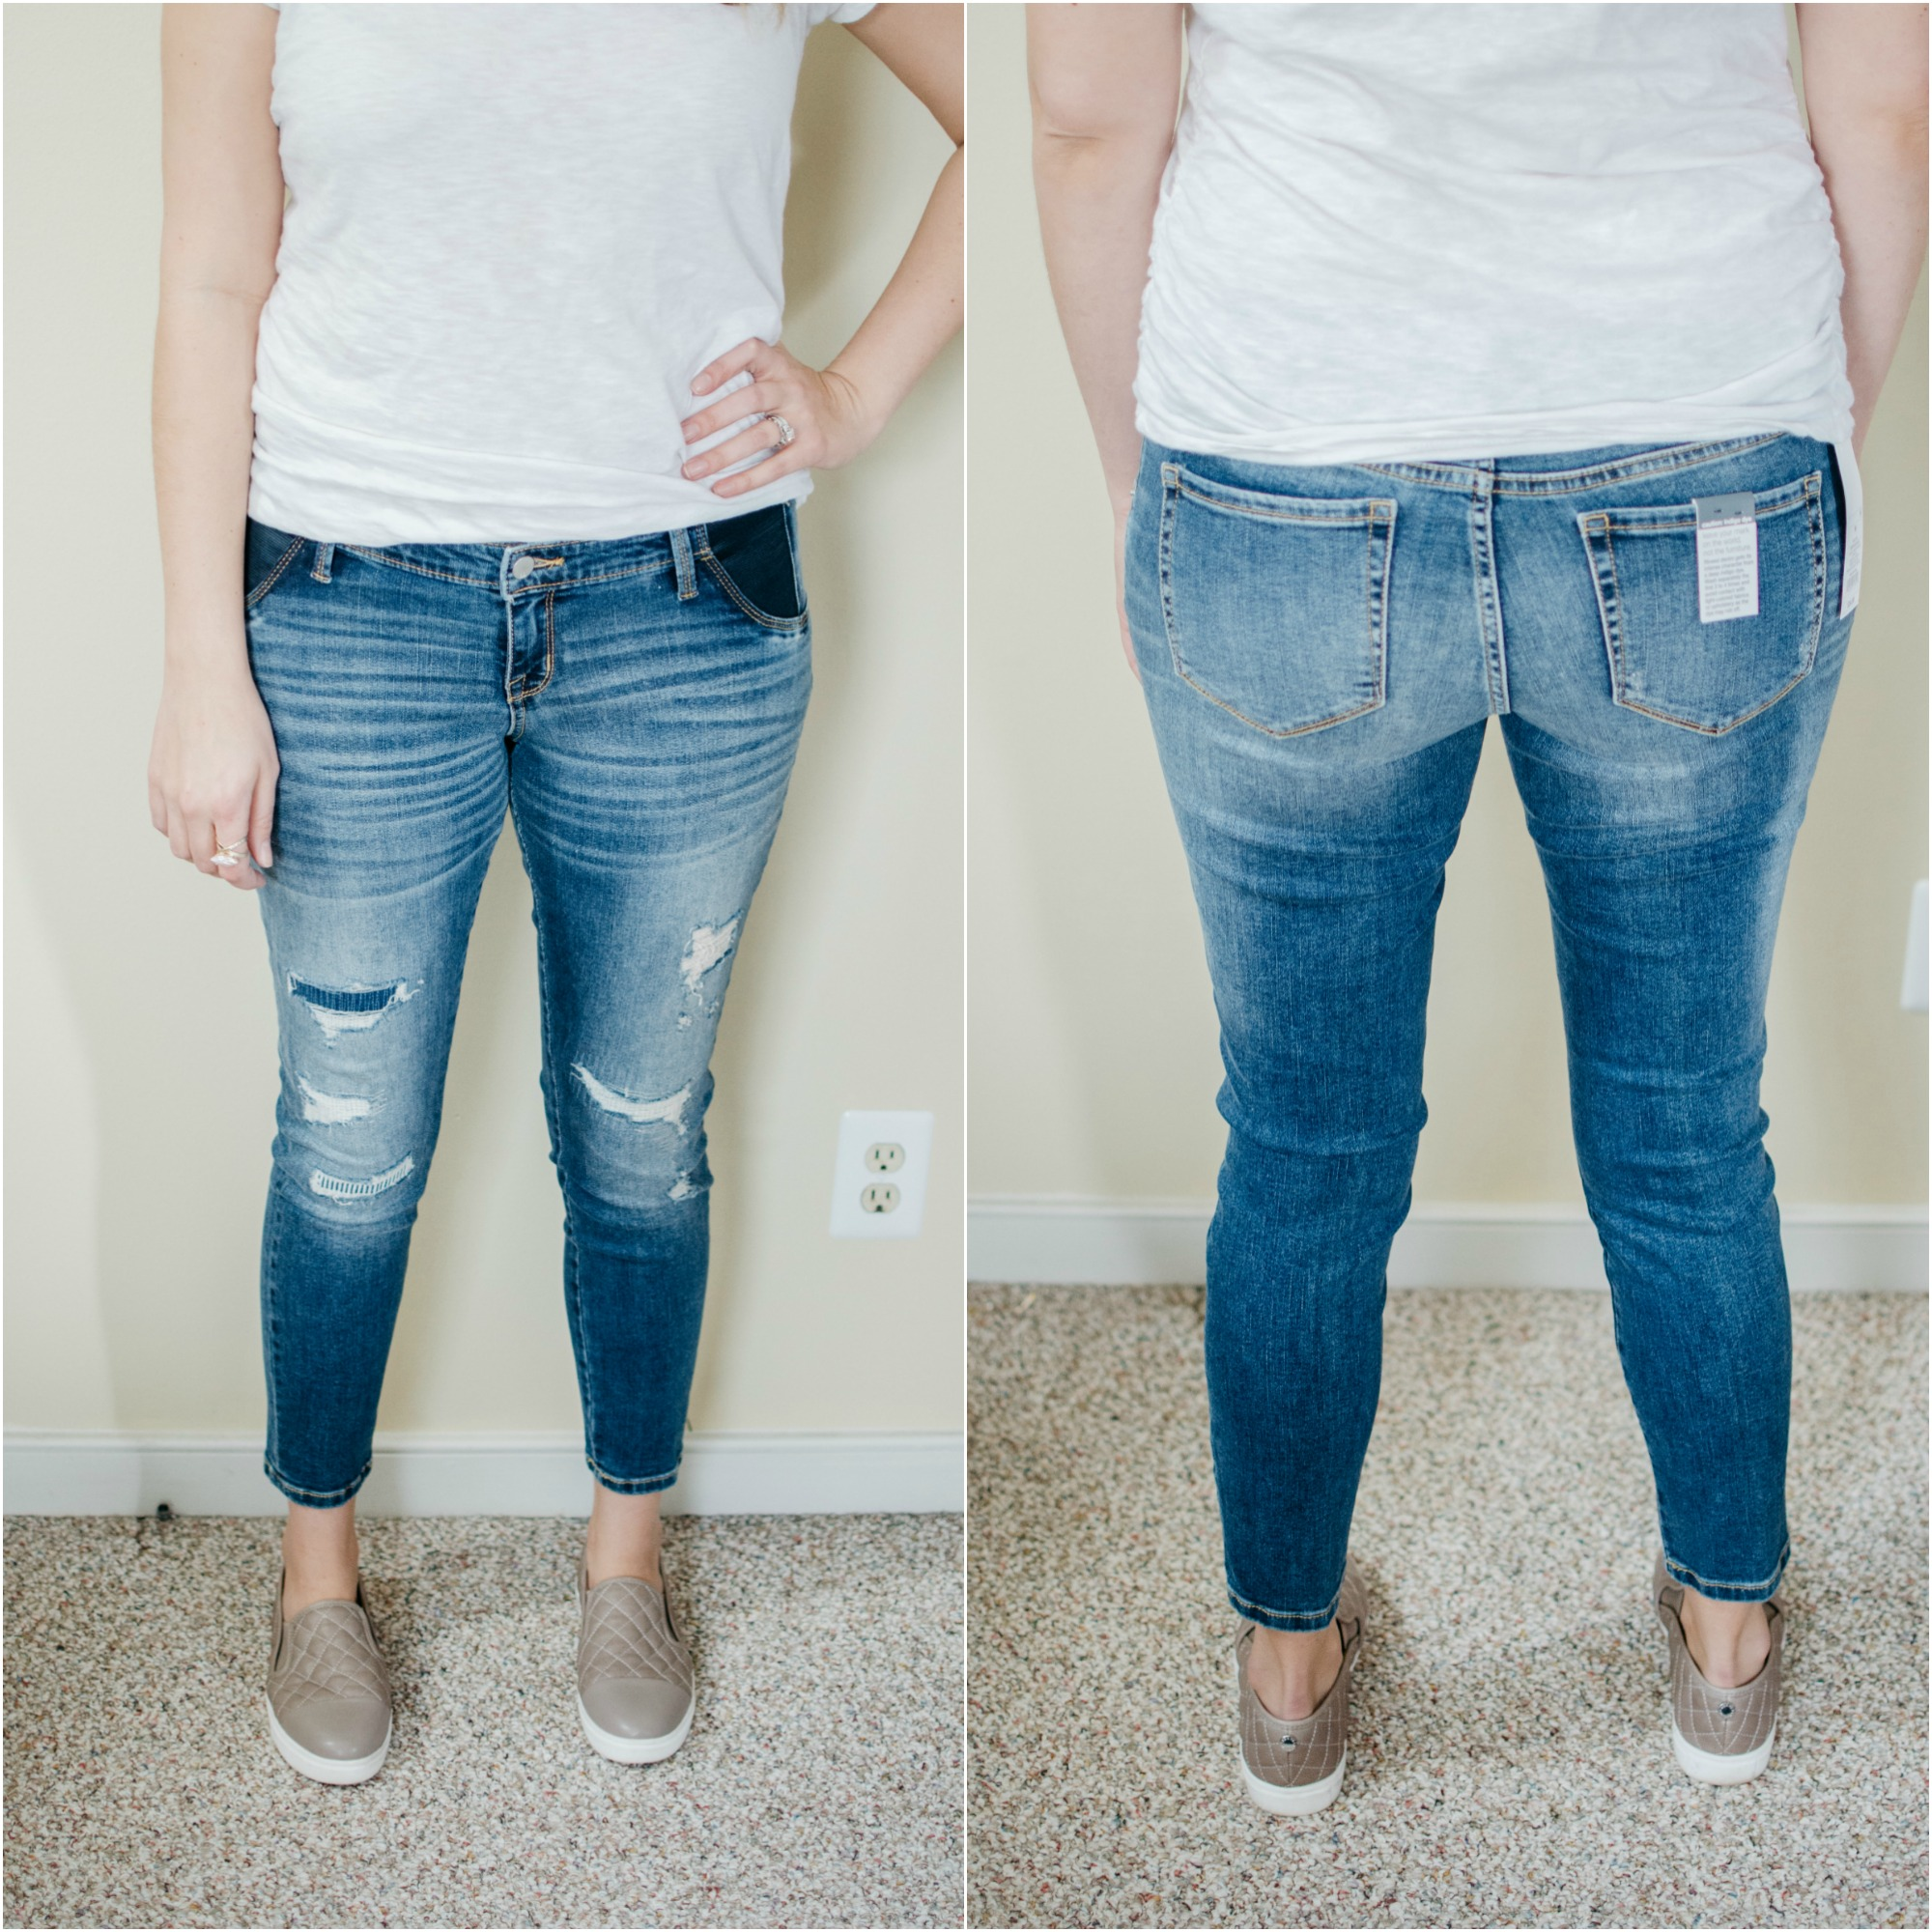 1cb9447254cab best maternity jeans - target maternity jeans review | See reviews of over  15 maternity jeans